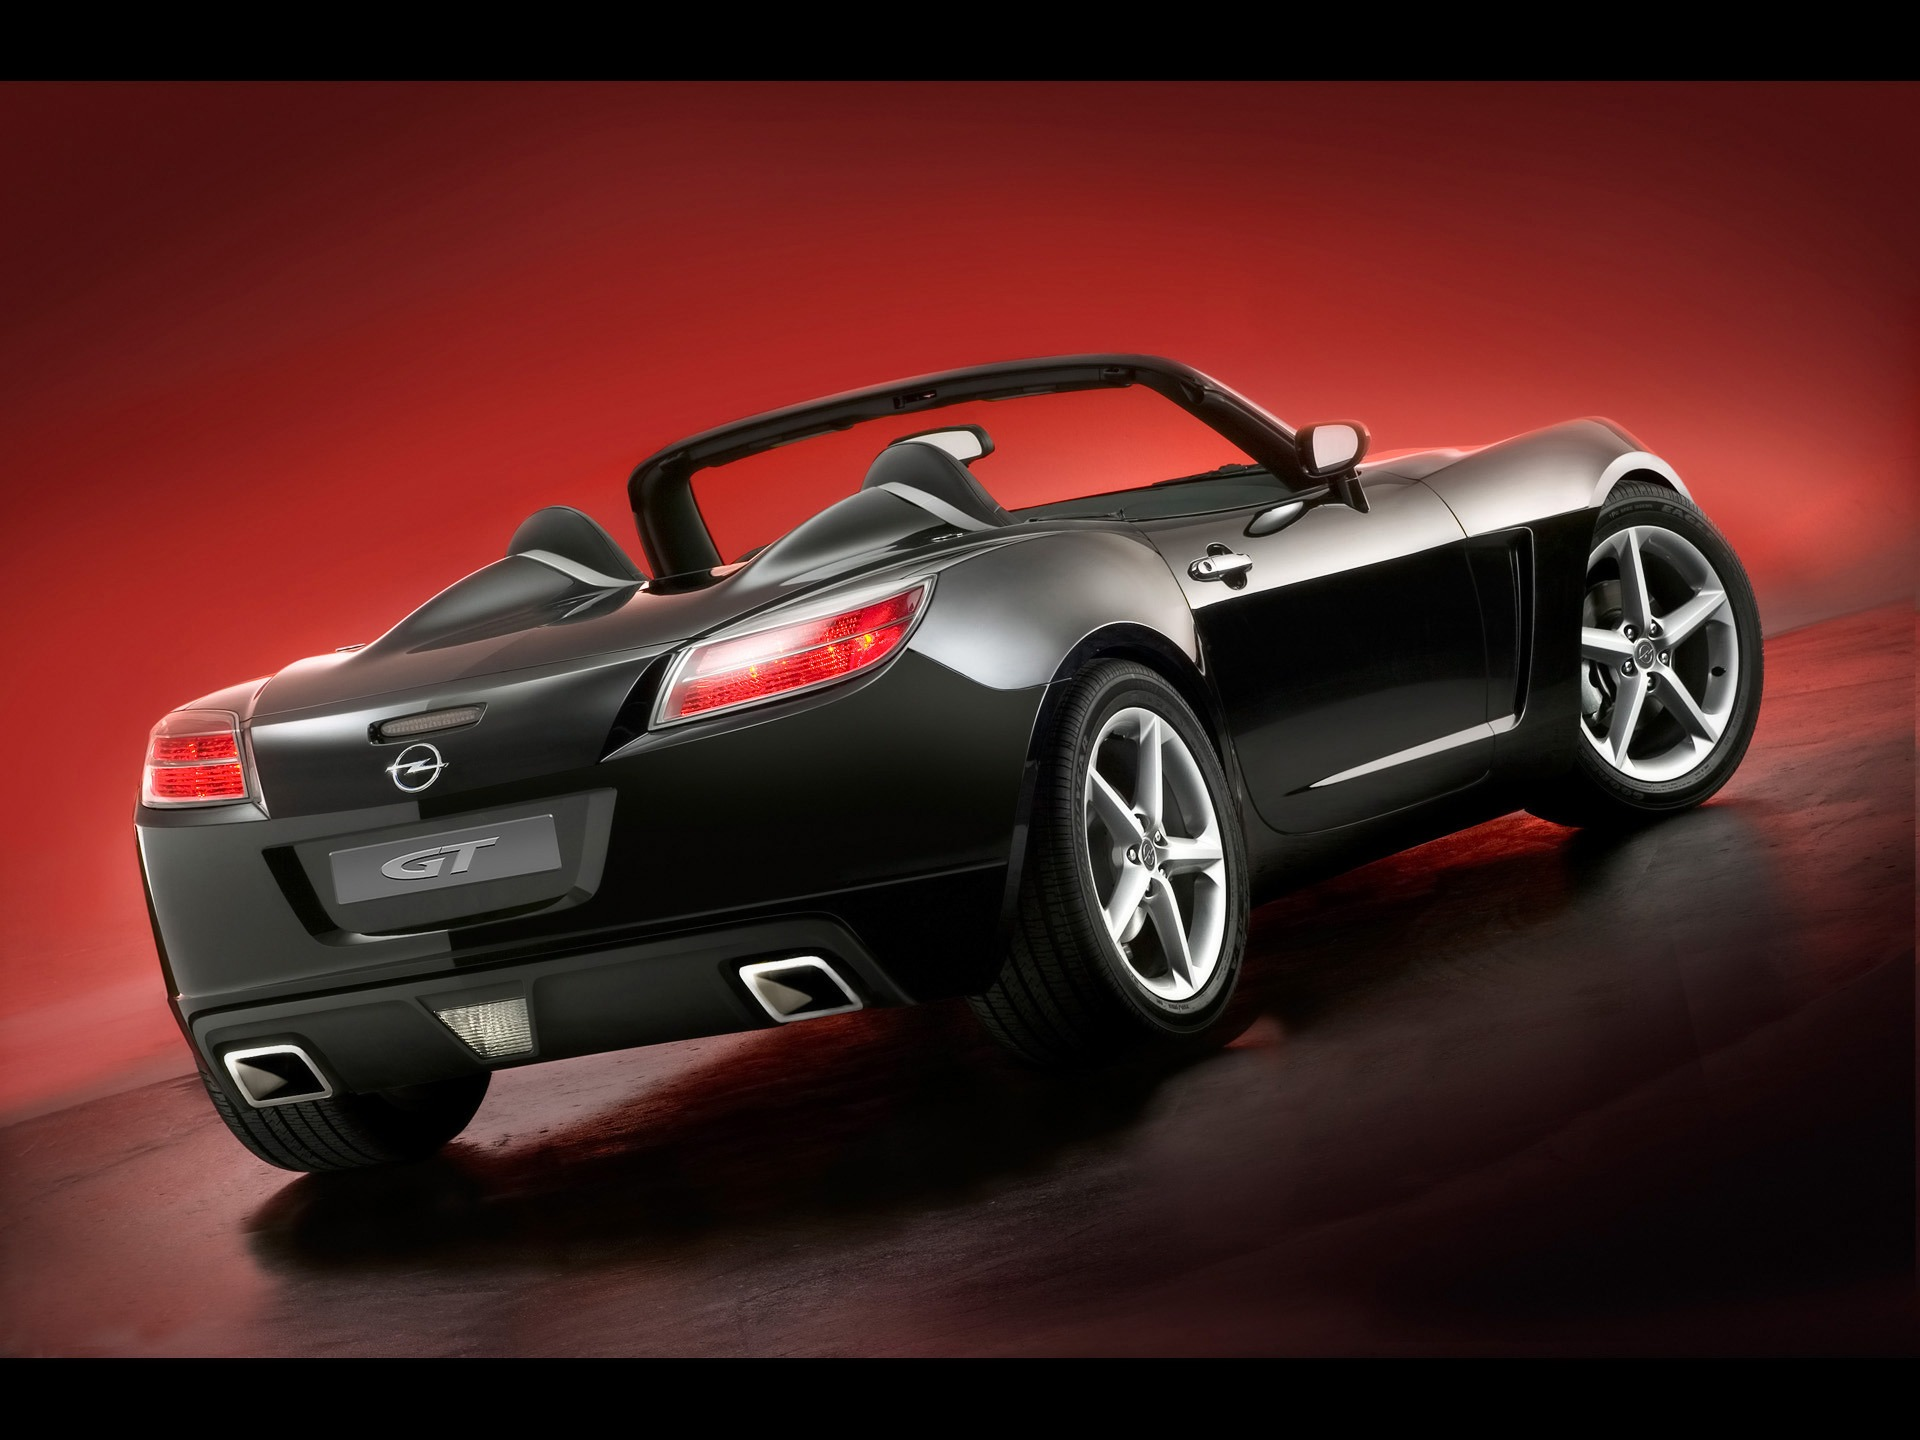 opel gt cabrio wallpaper opel cars wallpapers in jpg. Black Bedroom Furniture Sets. Home Design Ideas